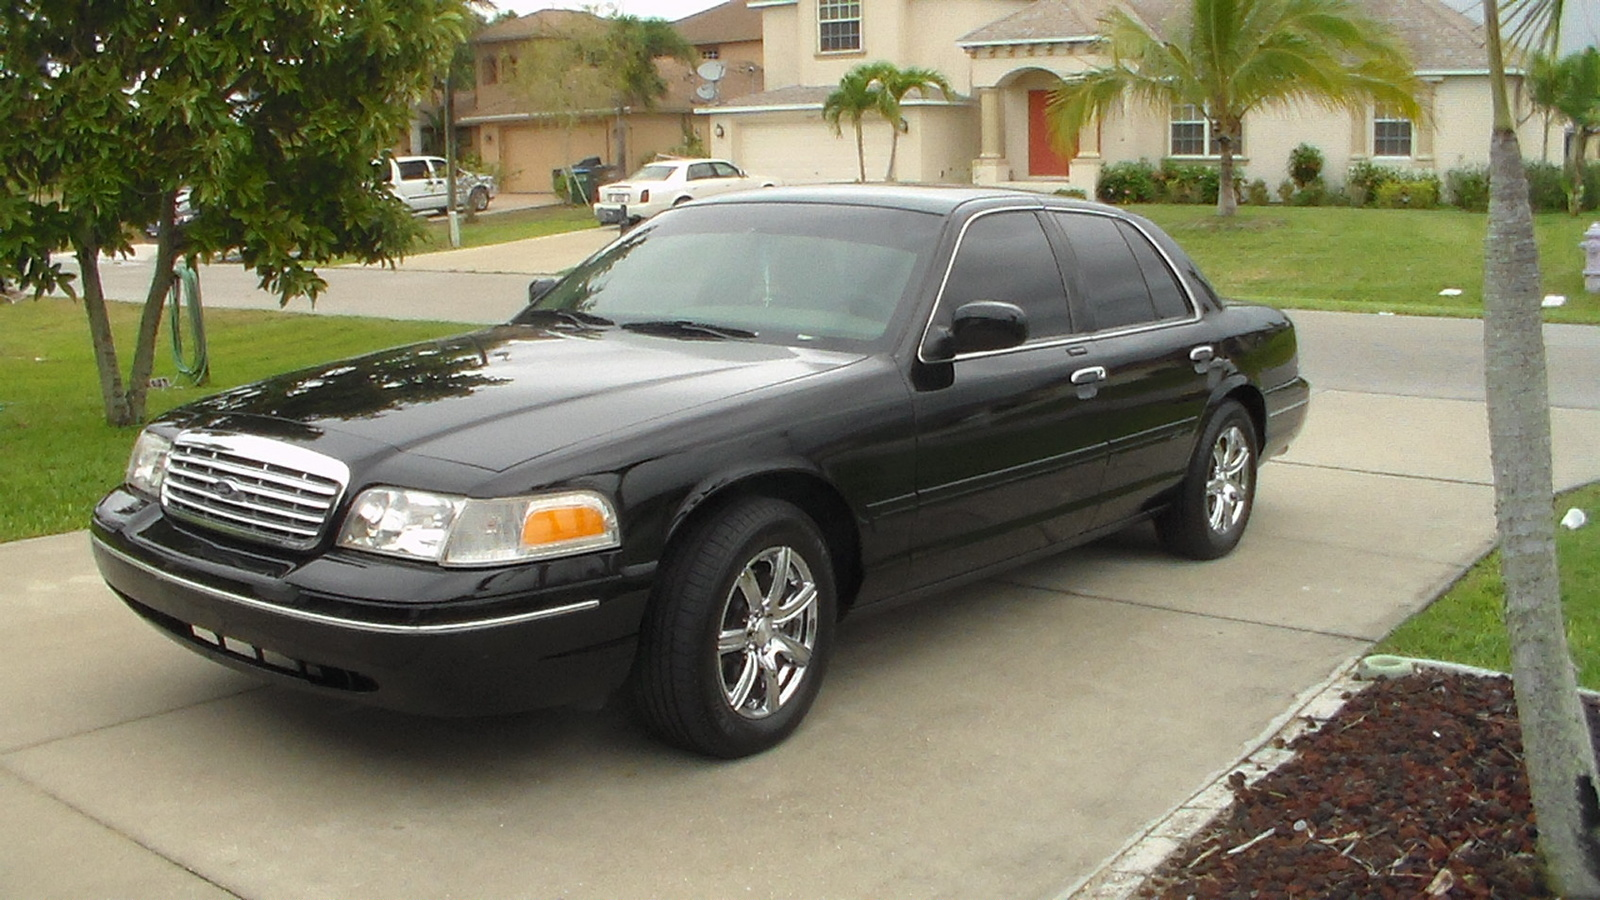 I would like to jazz up my 2003 ford crown vic